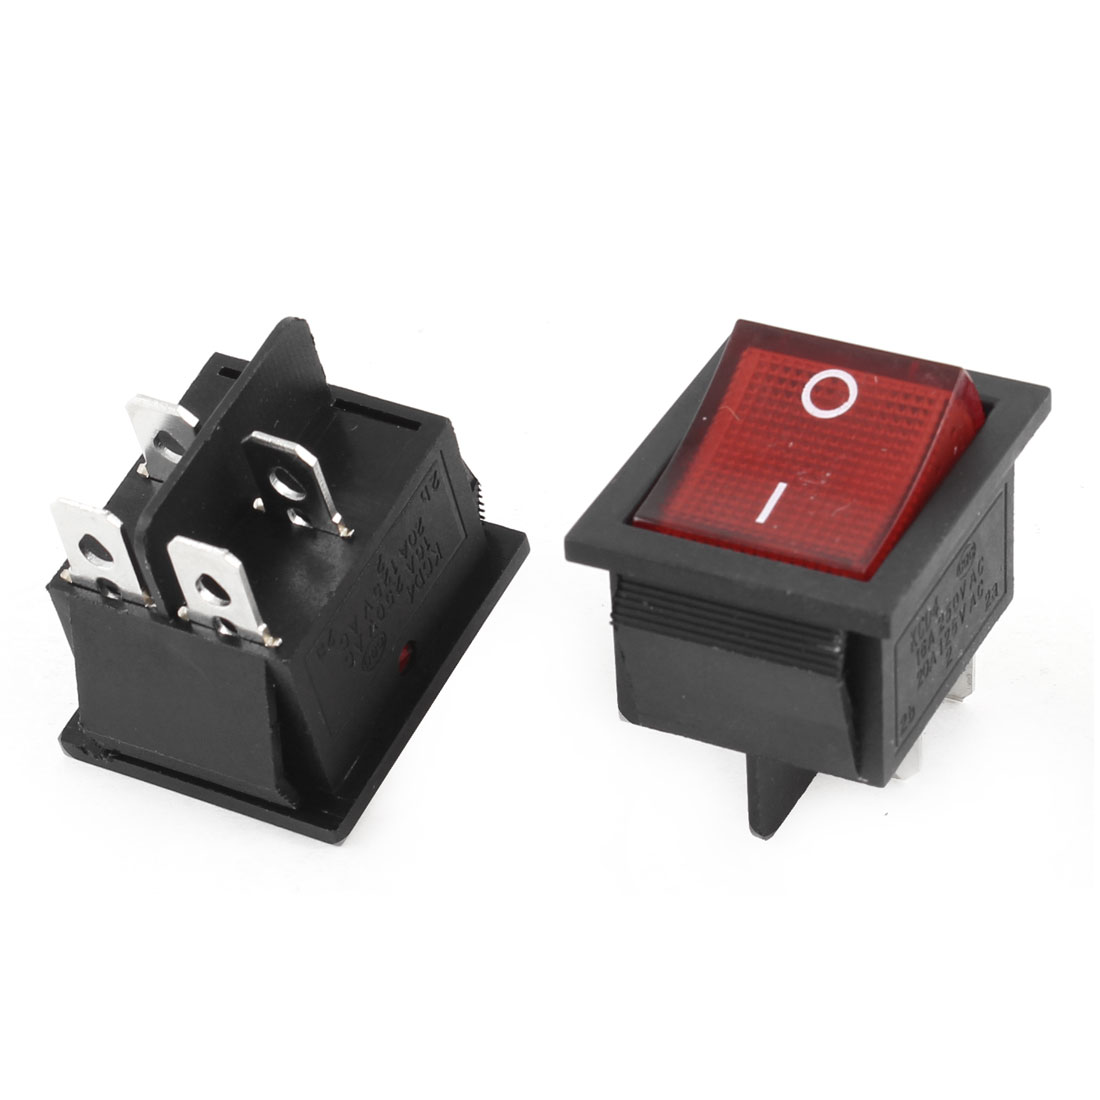 2 Pcs DPST ON-OFF 4 Pin Red Light Rocker Boat Switch 16A/250V 20A/125V AC